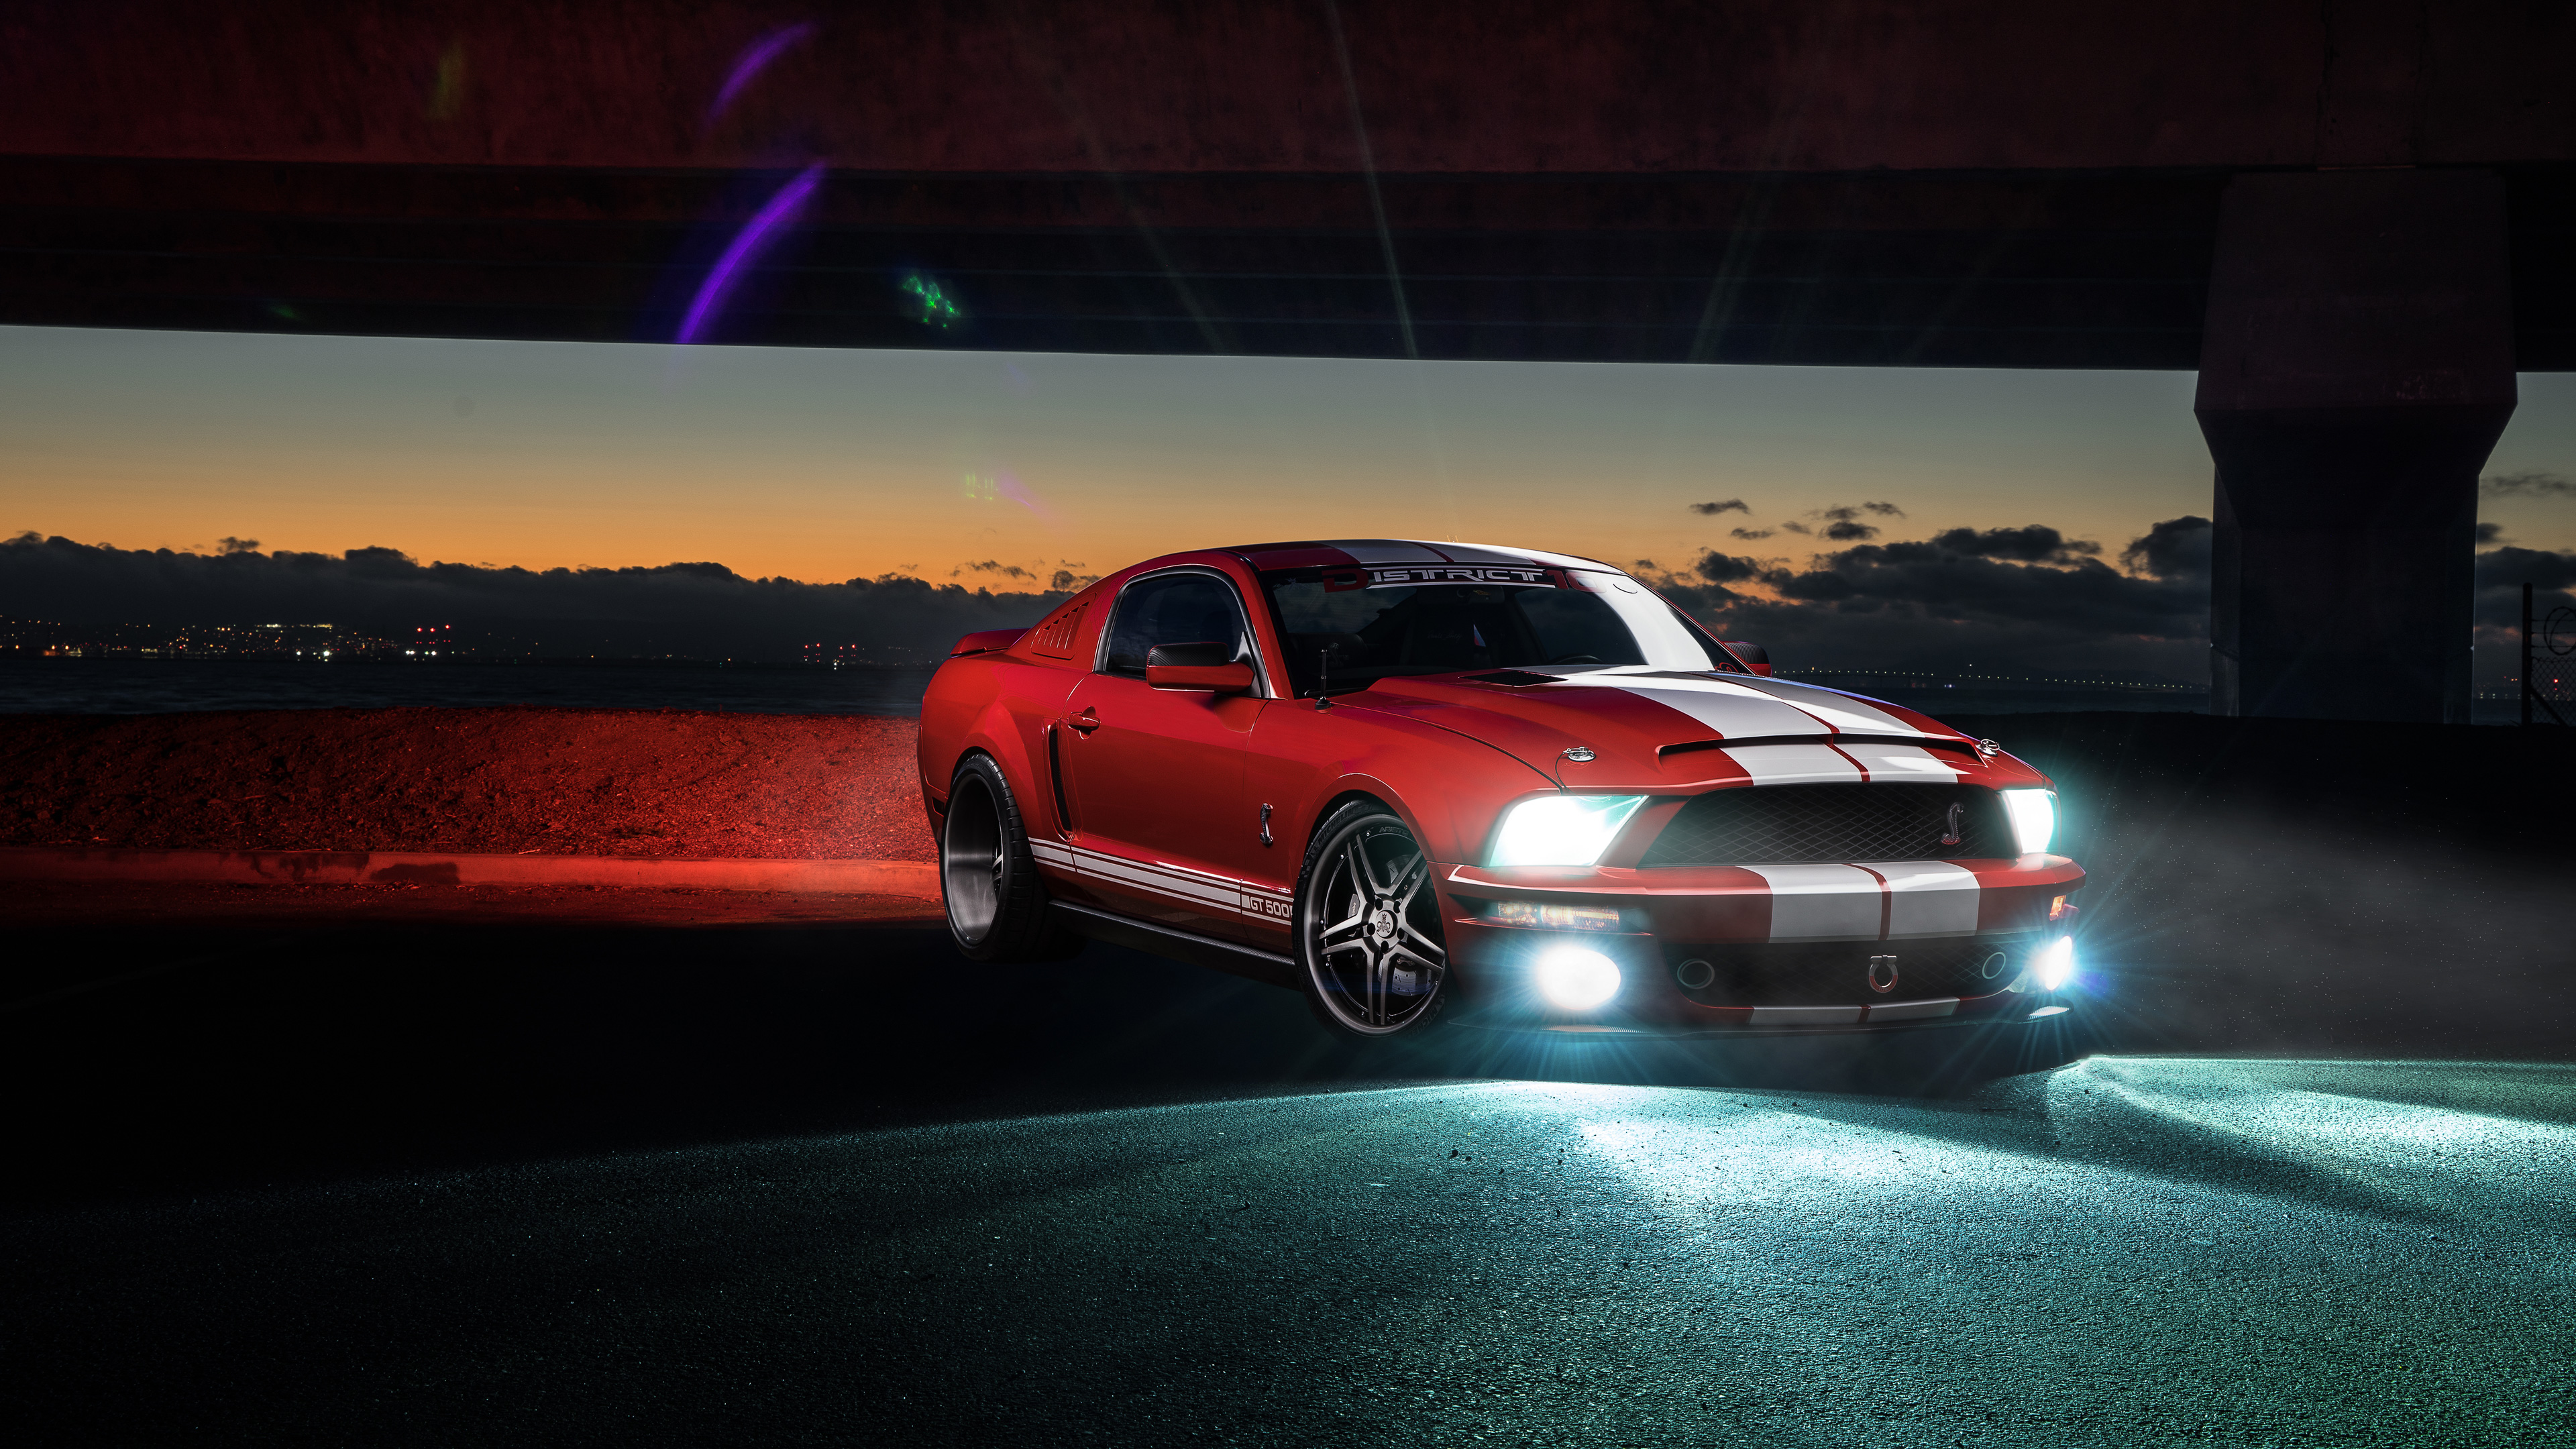 Ford Mustang Shelby GT500 Wallpaper HD Car Wallpapers 3840x2160